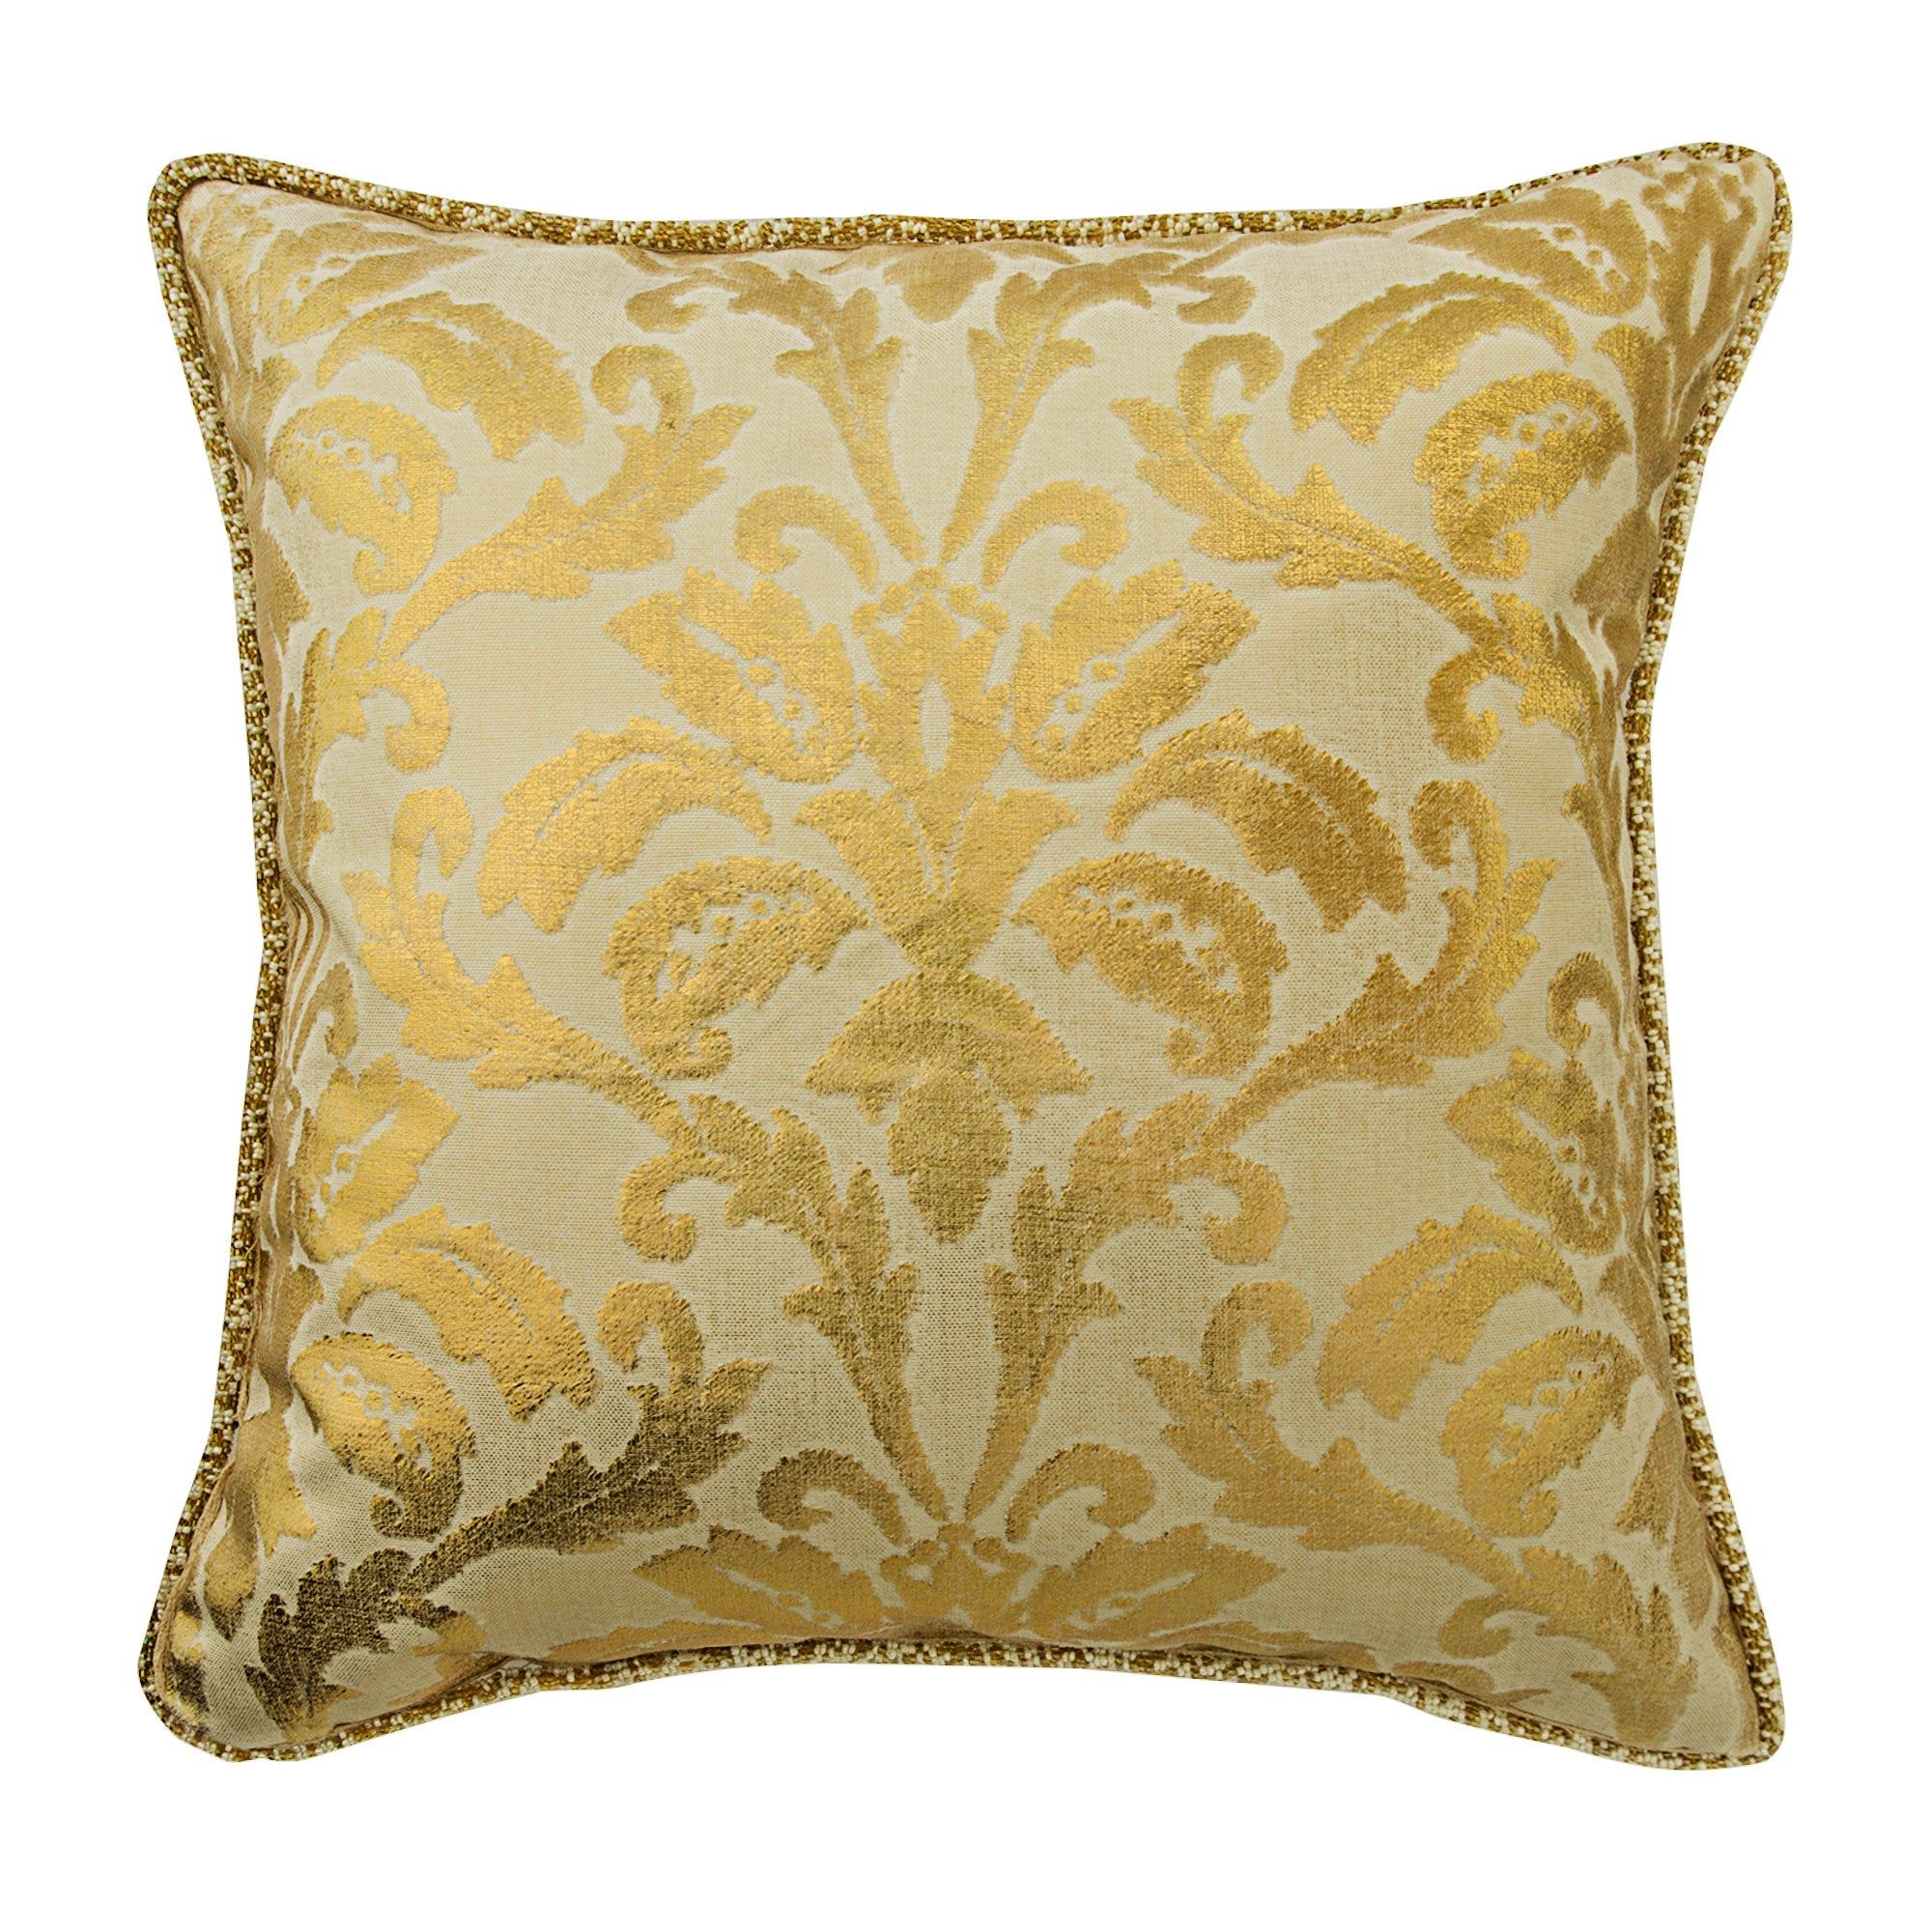 Decorative Damask Pillow Cover 16 X 16 Foil Velvet Pillowcase Square Gold Throw Pillows Cover Couch Pillow C Damask Pillows Gold Throw Pillows Gold Pillows